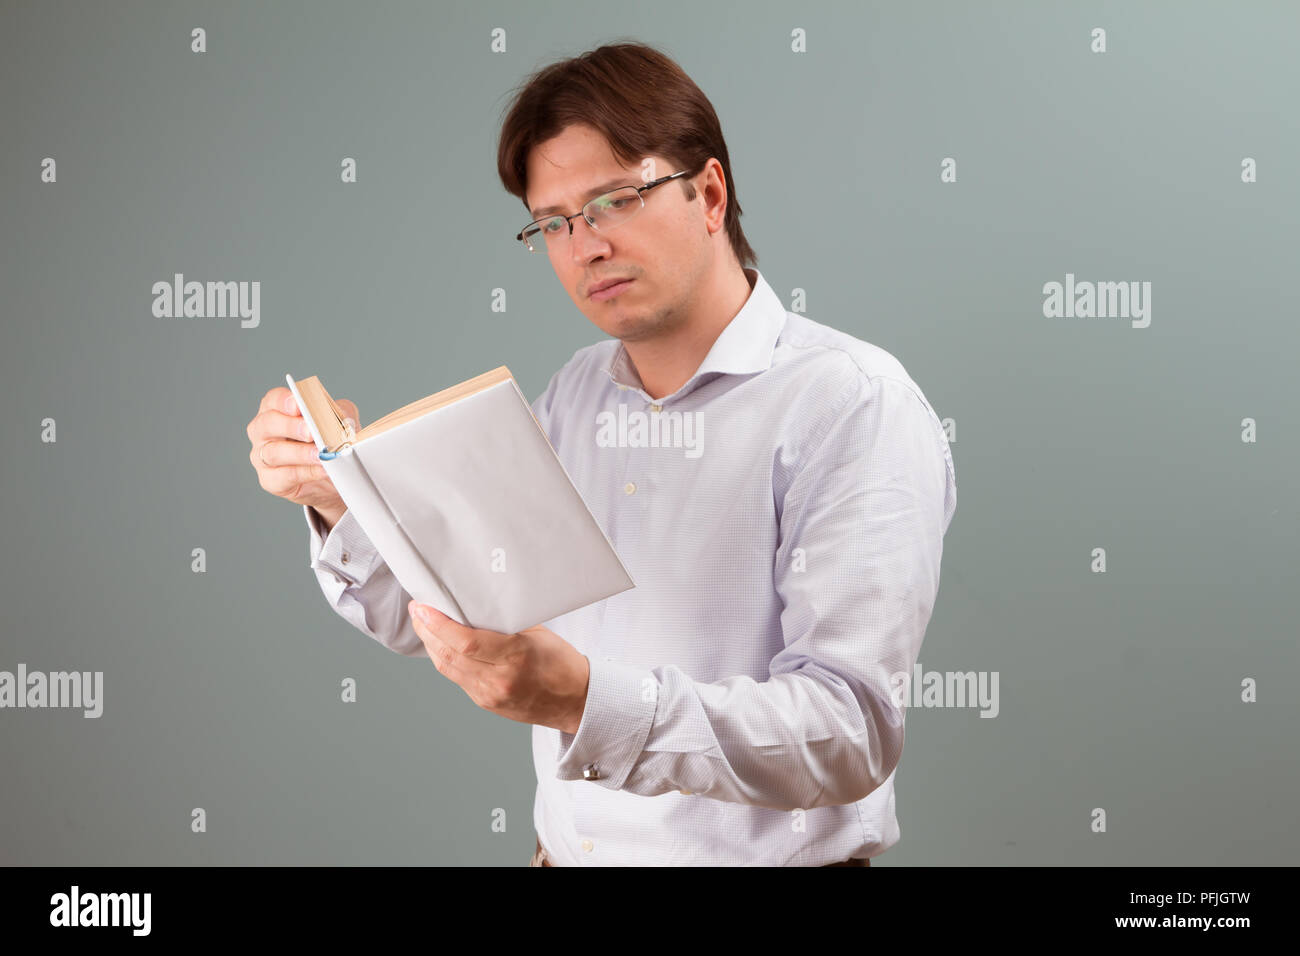 A young man focused on reading a book in white cover; horizontal orientation studio portrait. - Stock Image